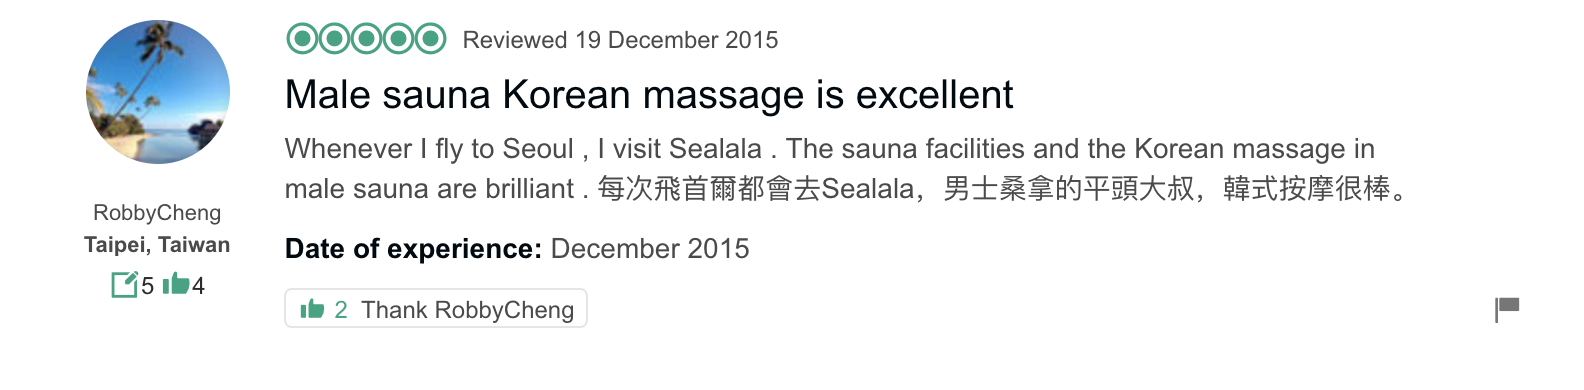 'Whenever I fly to Seoul , I visit Sealala. The sauna facilities and the Korean massage in male sauna are brilliant…' - SeaLaLa review from TripAdvisor